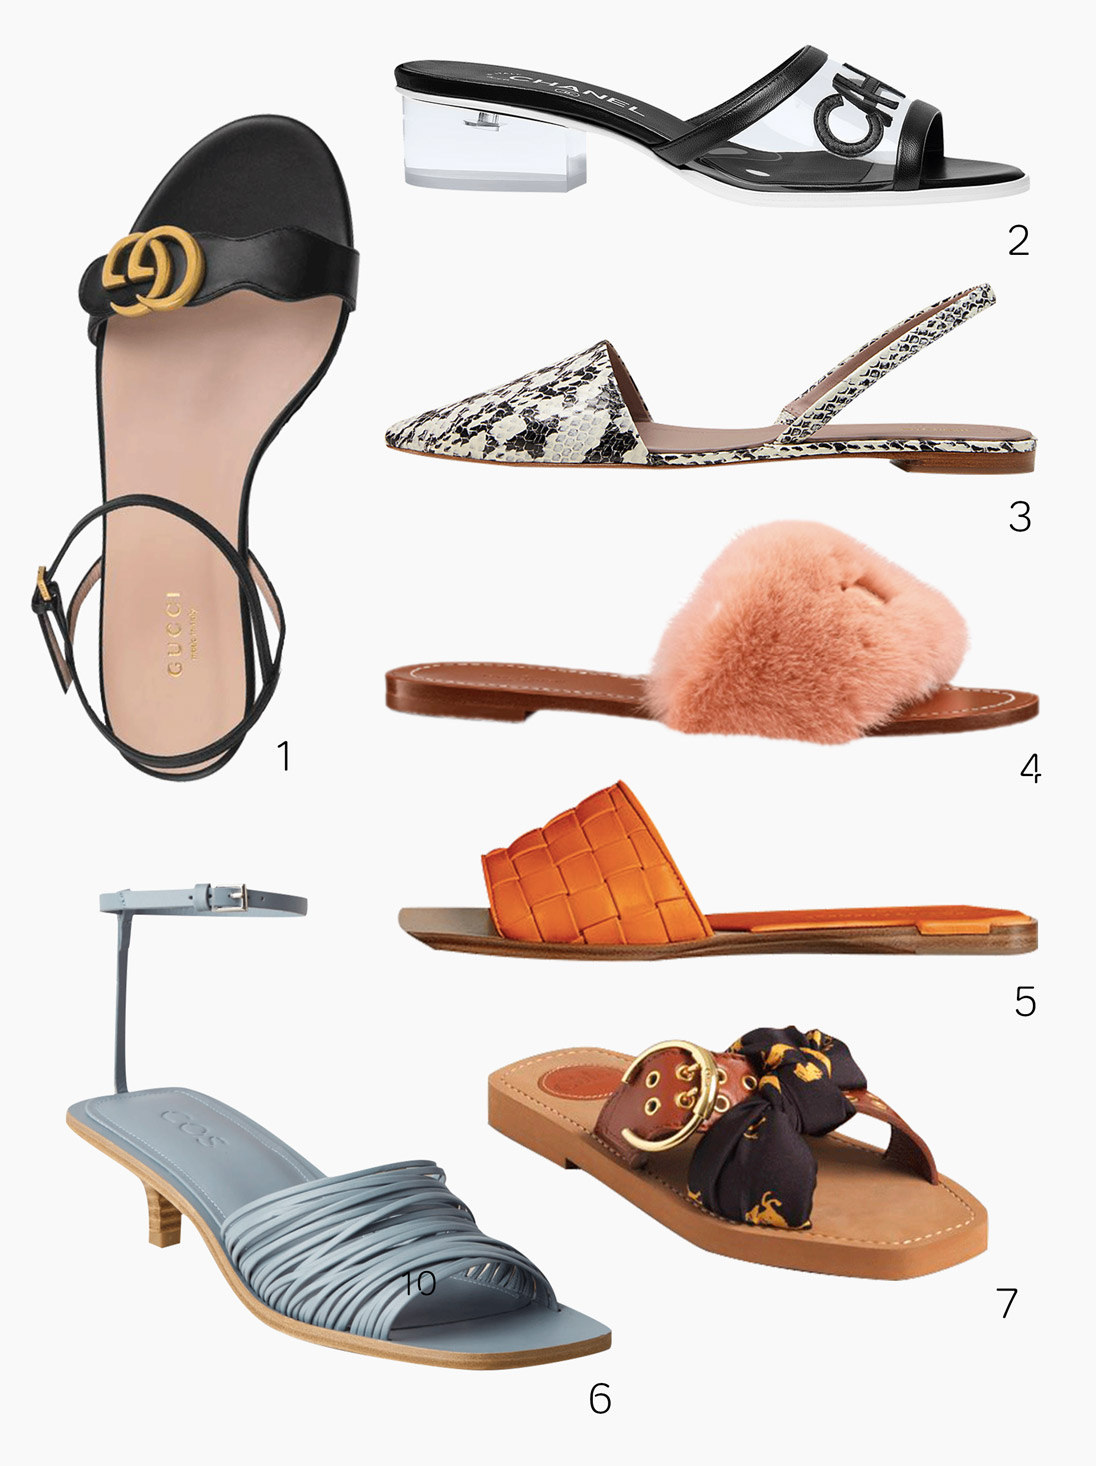 The Style Sheet's guest editor, fashion consultant Chloe Mak, curates the summer's best sandals